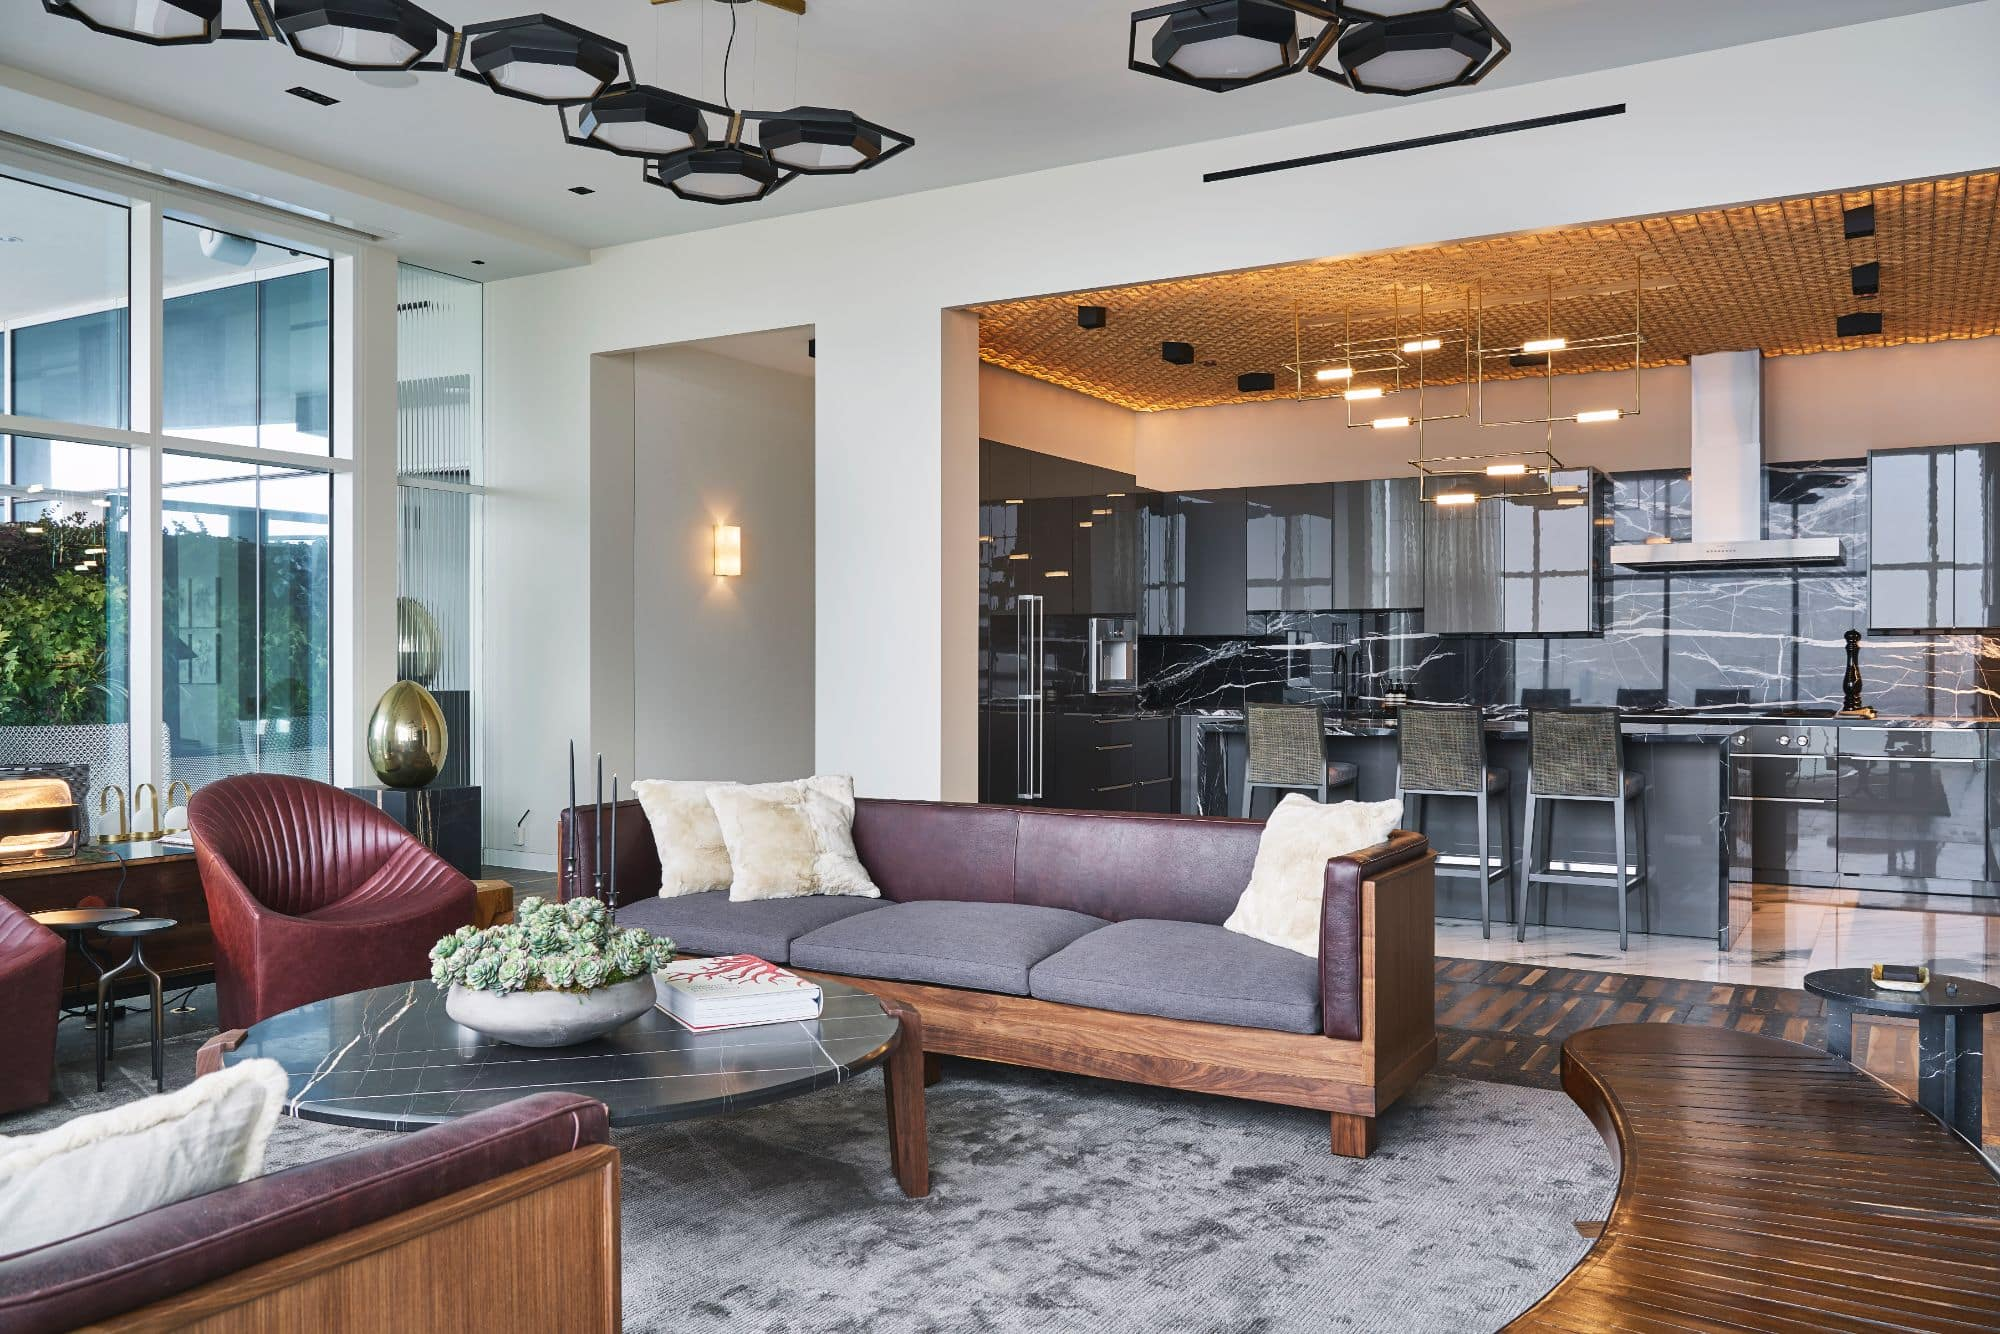 living area and eggersmann kitchen inside a penthouse of the arabella luxury high rise in houston